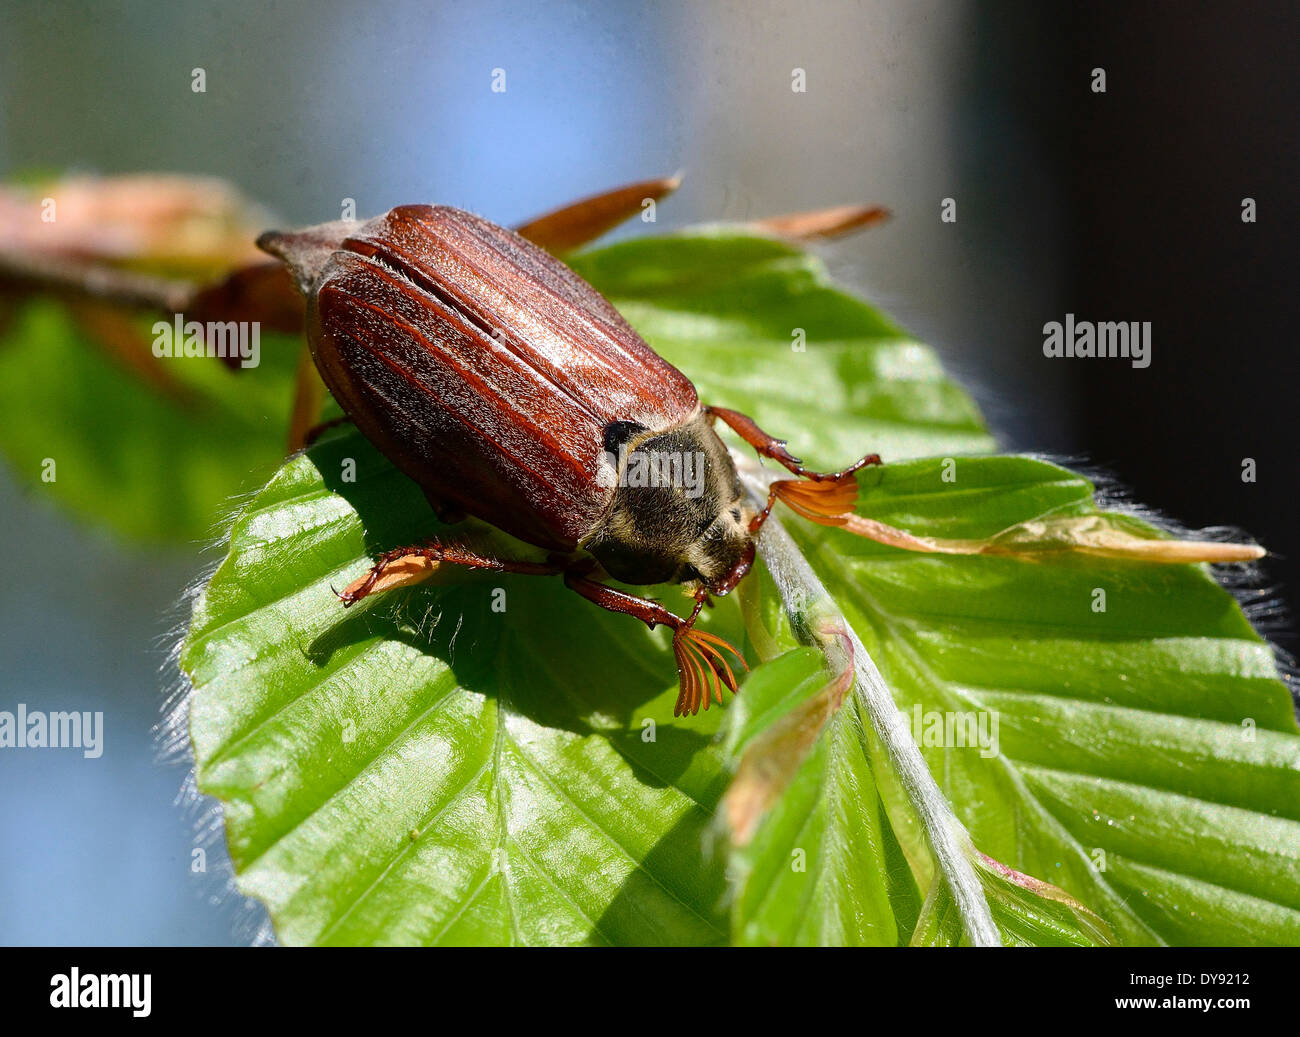 Cockchafer, Melolontha, insects, scarab beetles, Polypagha, beetle, creepy-crawlies, animal, animals, Germany, Europe, Stock Photo